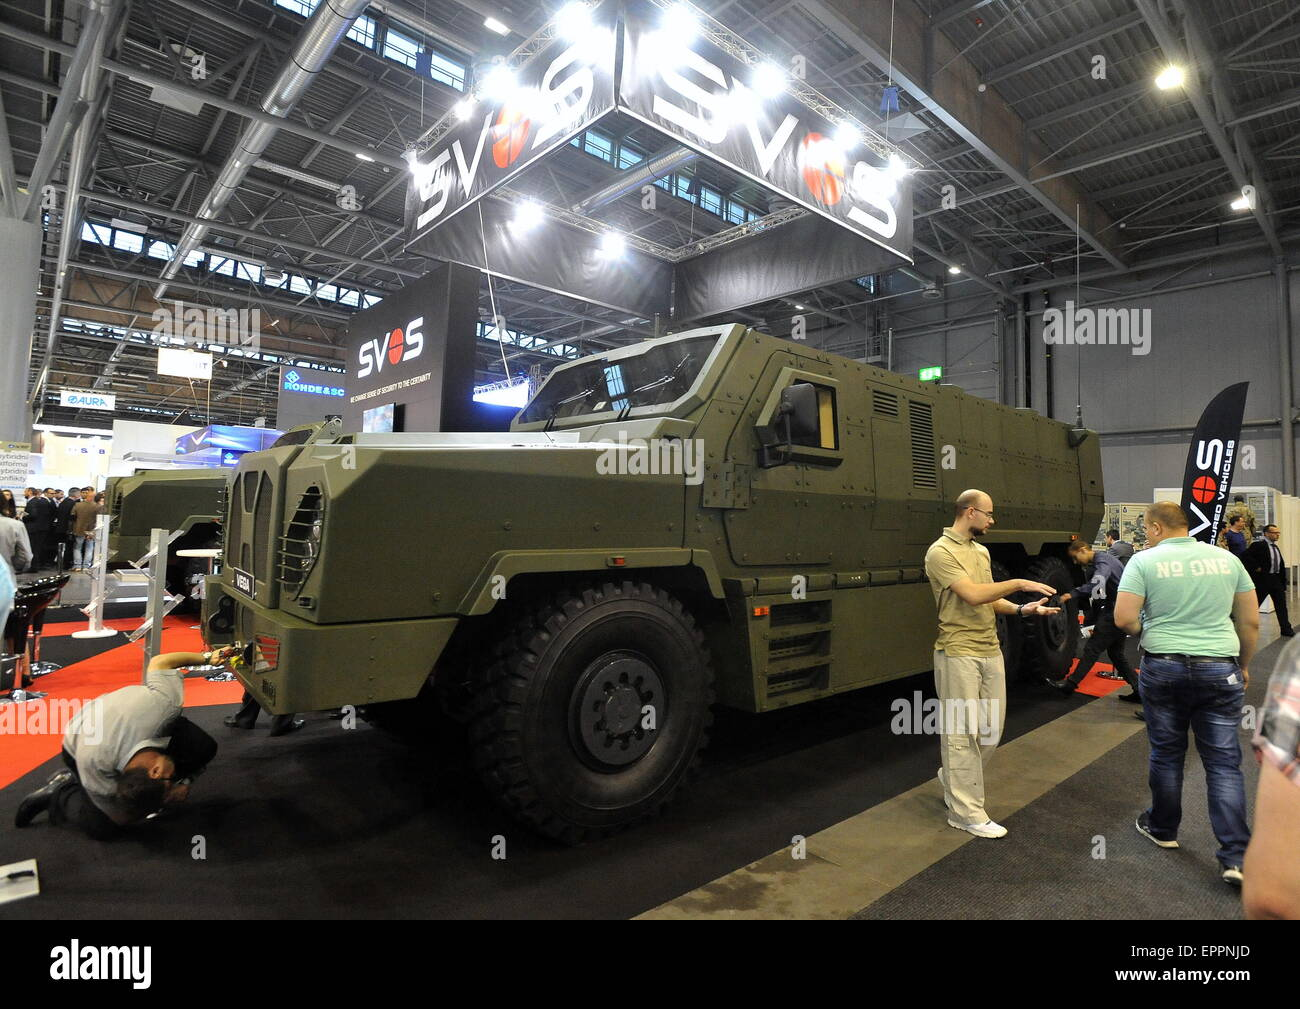 VEGA, Vehicle with Enhanced Ground performance & Armour protection, international trade fair of defence&security - Stock Image